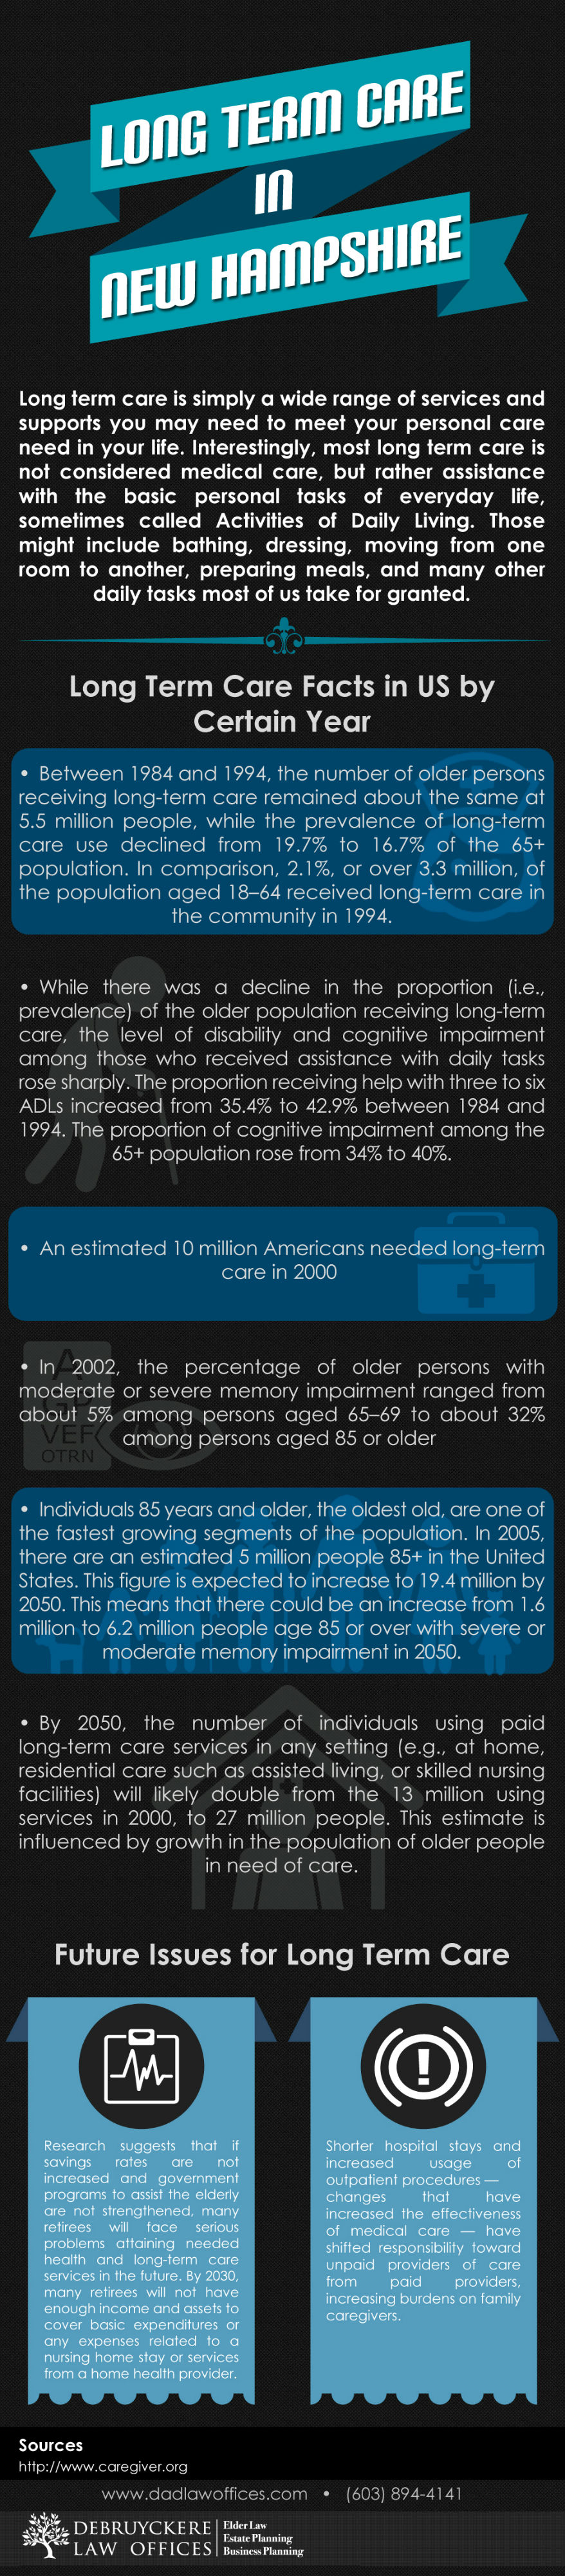 Long Term Care in New Hampshire - DeBruyckere Infographics